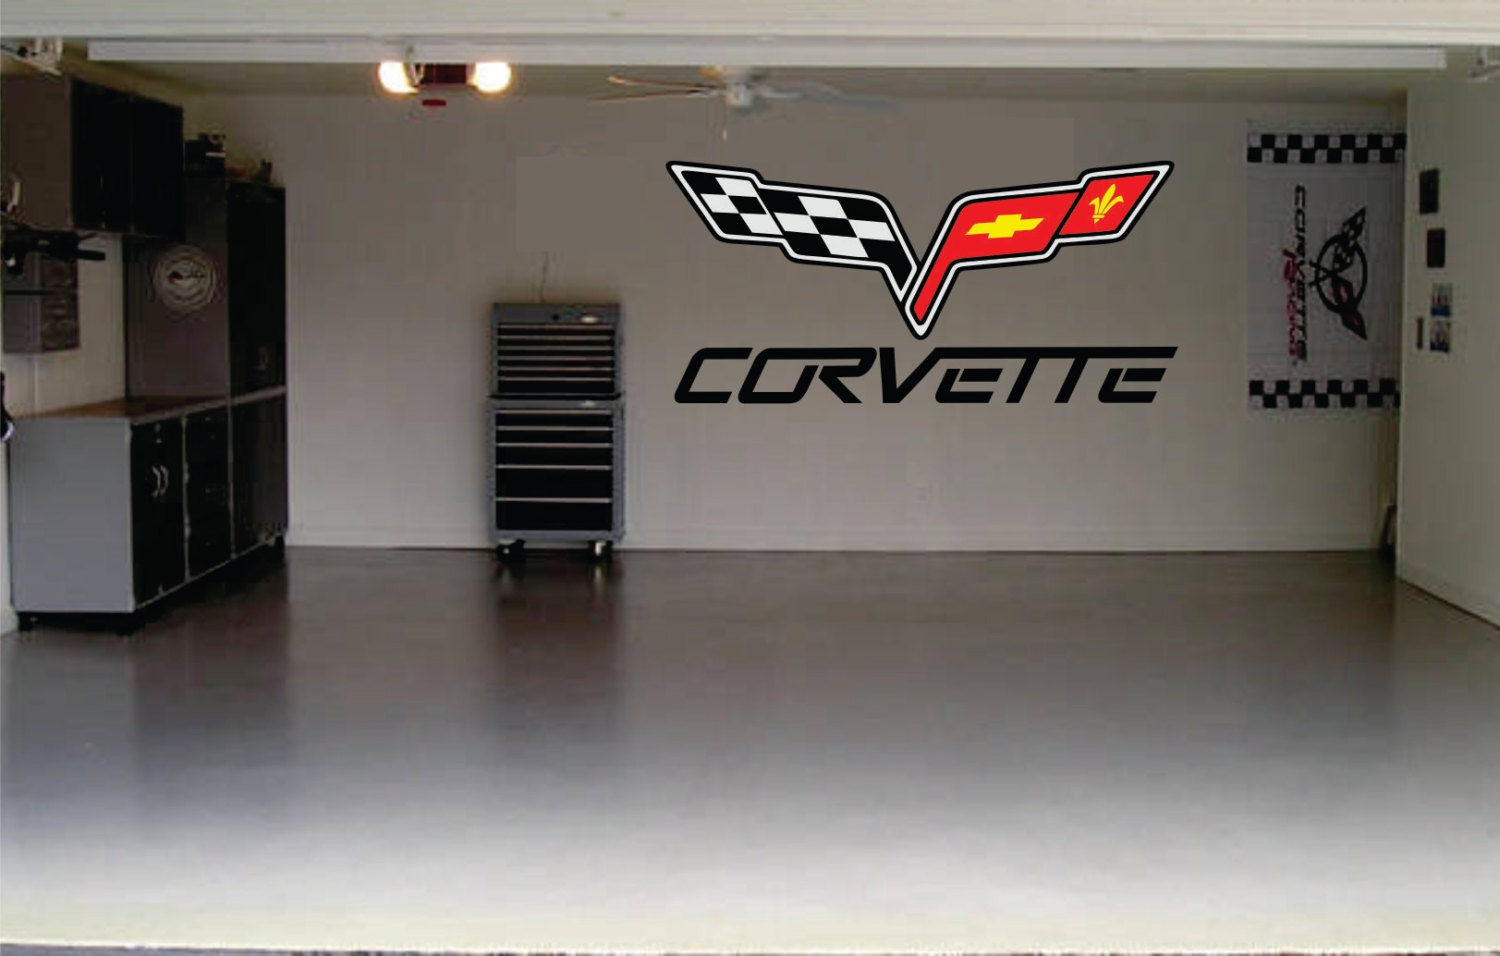 Corvette Car Decal Garage Door Or Wall Decal By SignJunkies